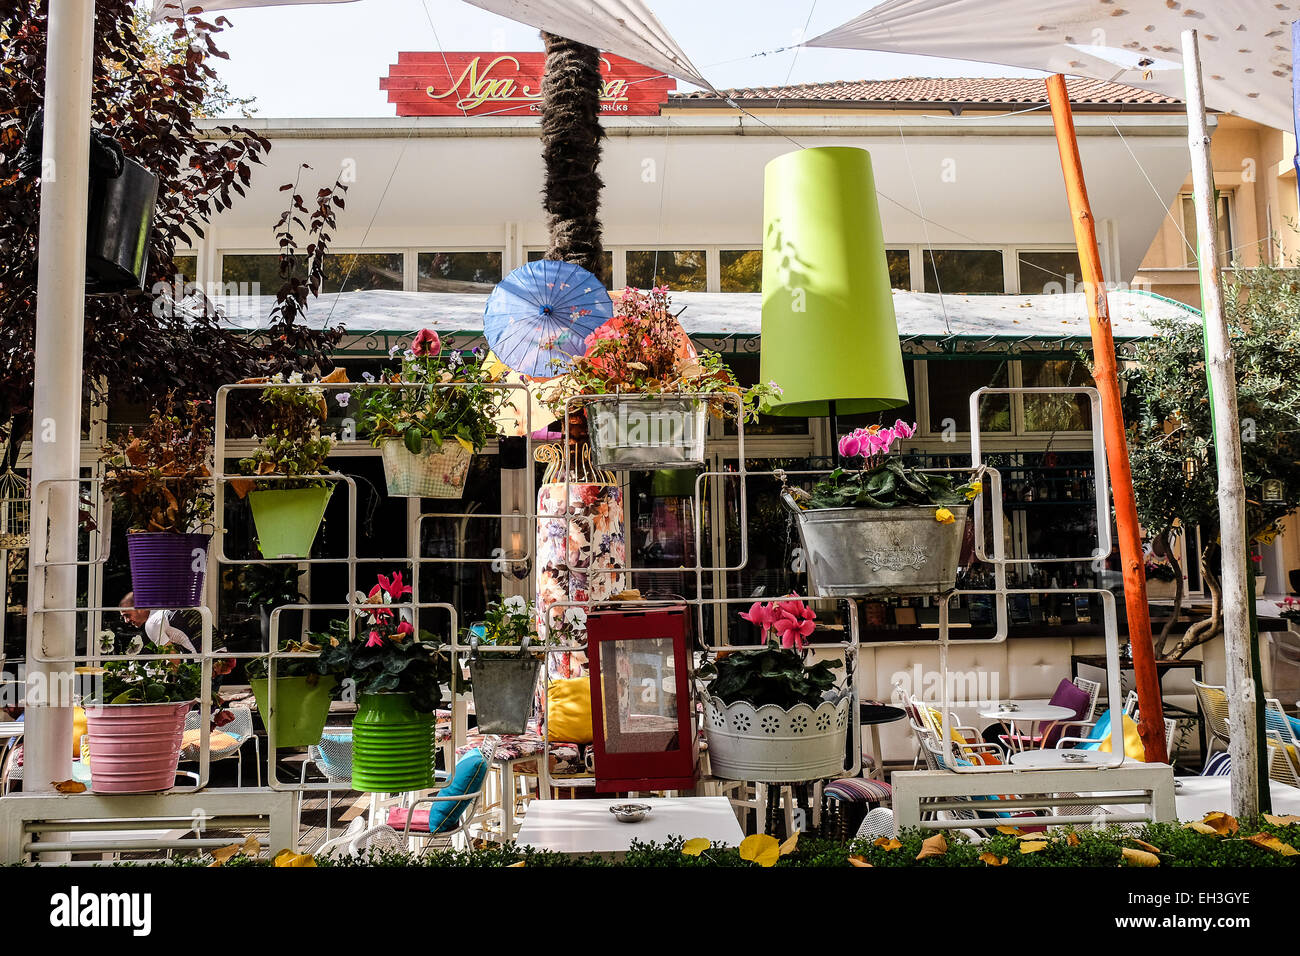 Albania, Tirana, restaurant in the Blloku neighbourhood. I the middle of the city, is a zone popular for numerous - Stock Image